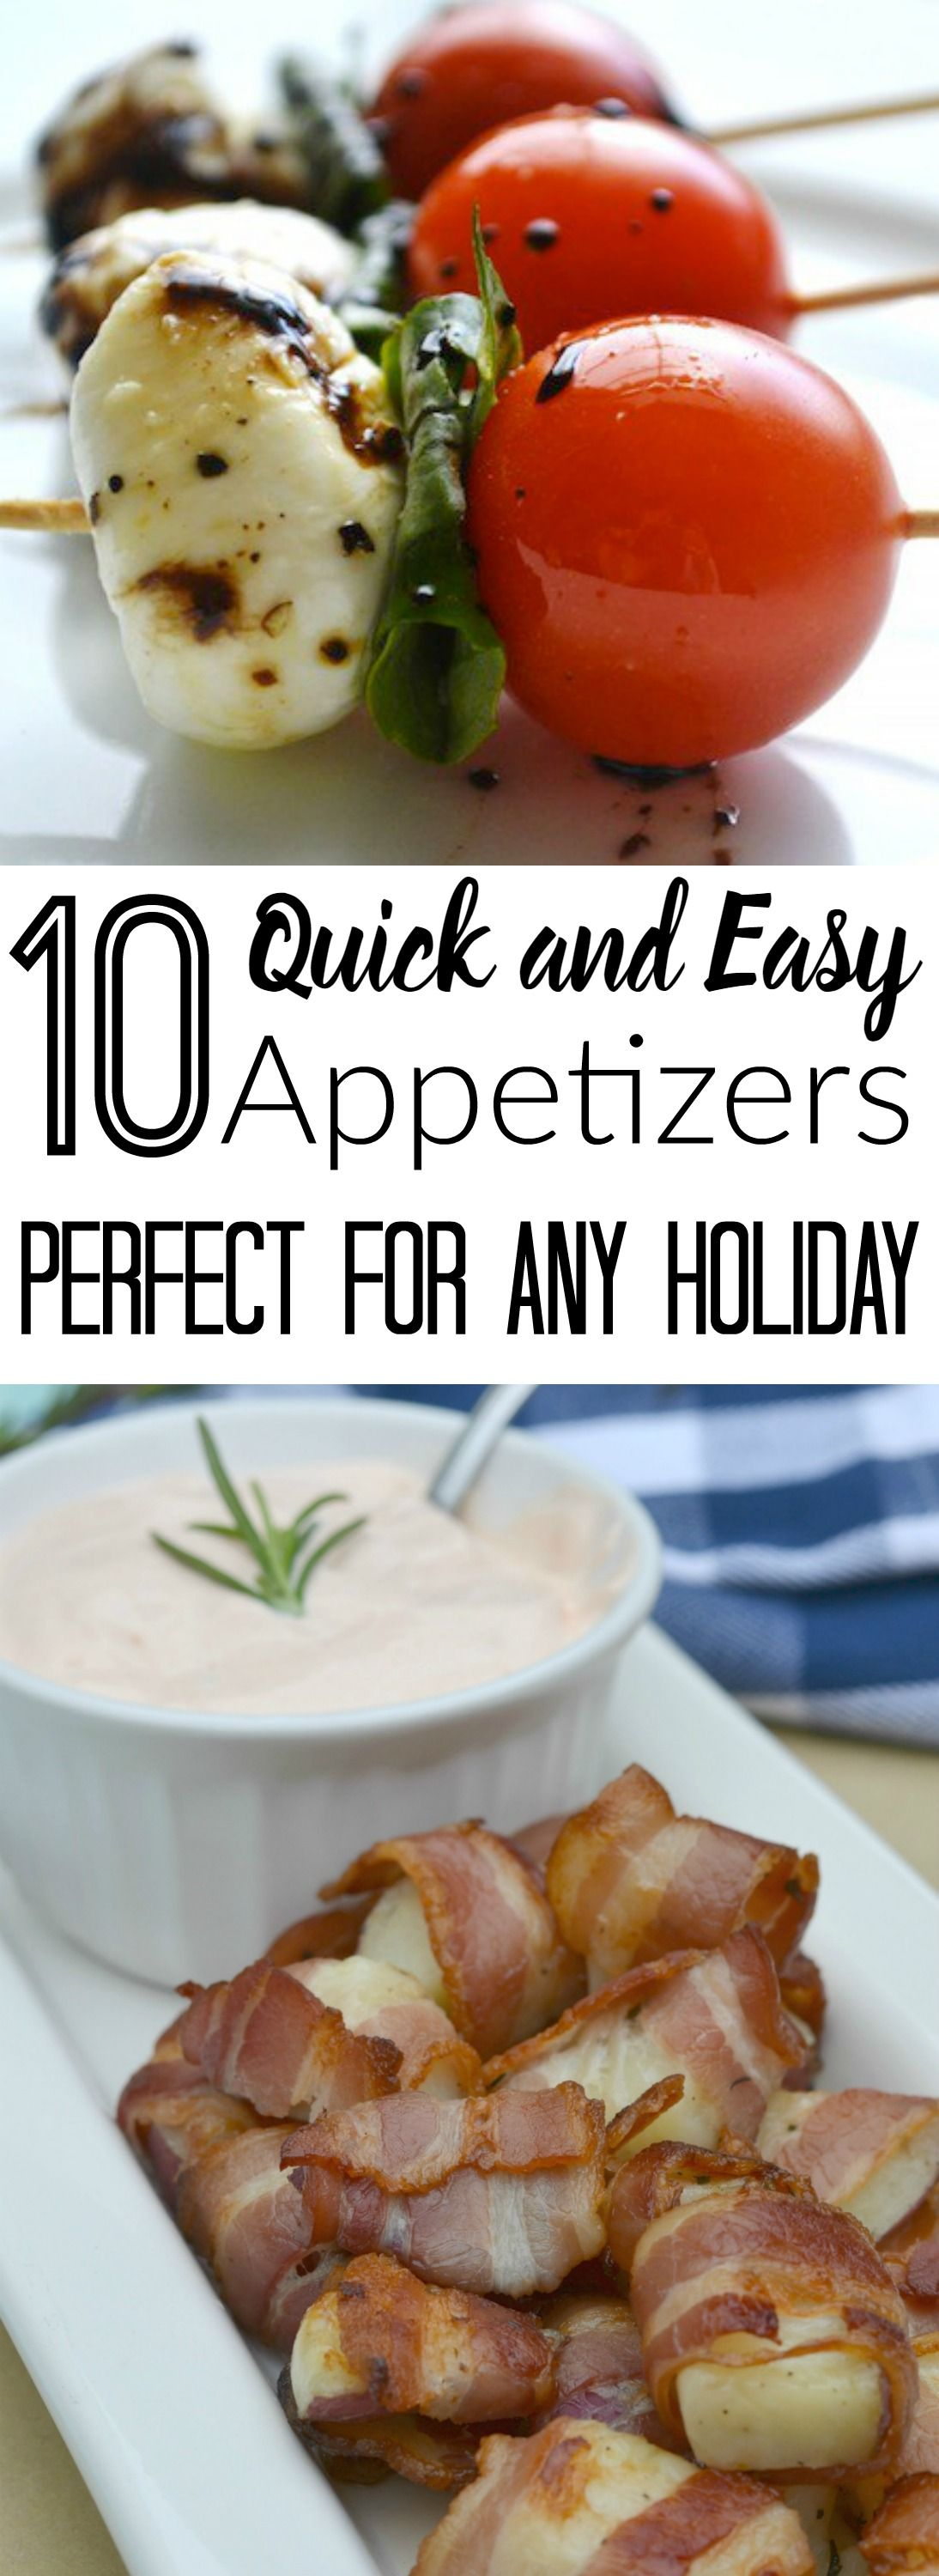 10 Quick and Easy Appetizers Perfect for any Holiday - Houston Mommy and Lifestyle Blogger | Moms Without Answers